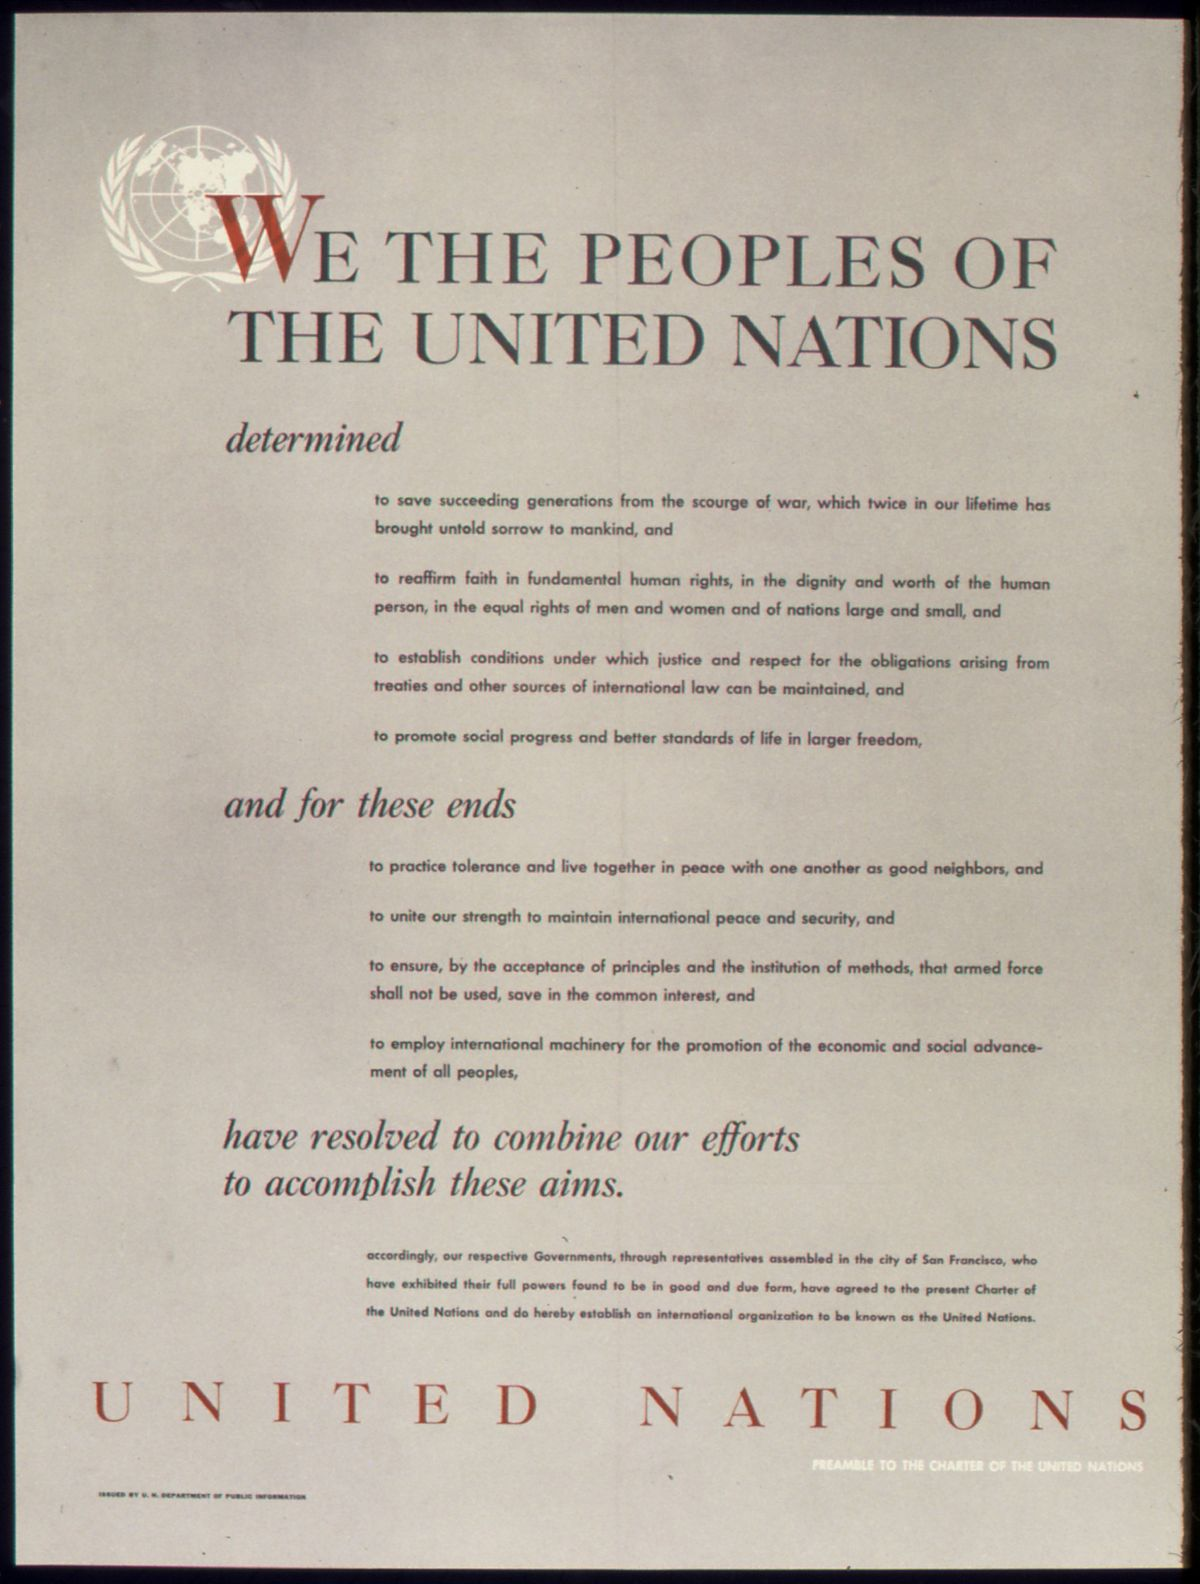 Preamble to the Charter of the United Nations